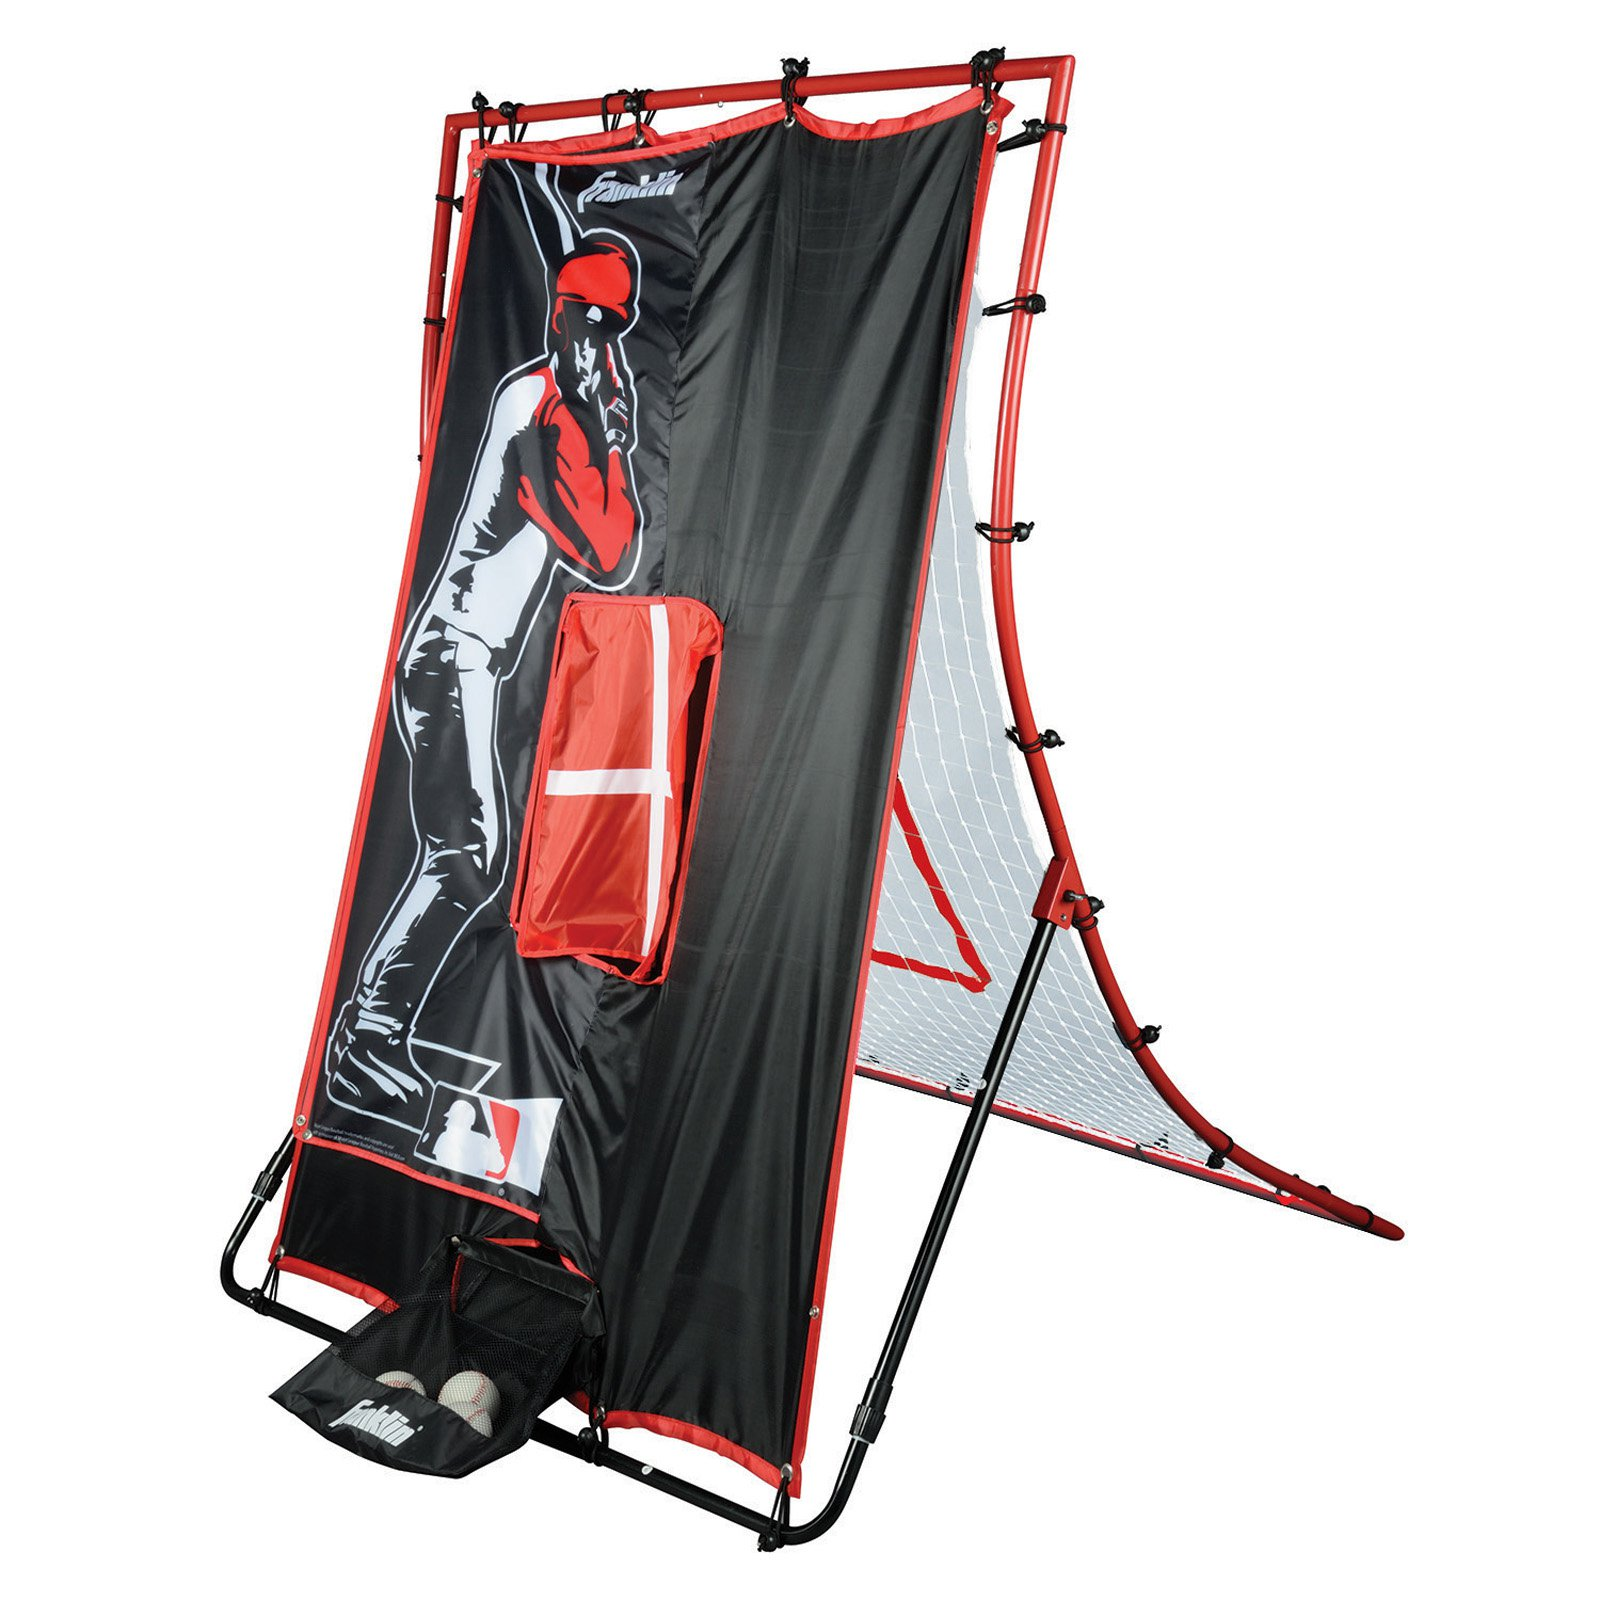 Franklin Sports 19069 MLB 65-inch 2-in-1 Switch Hitter Flyback Return Trainer